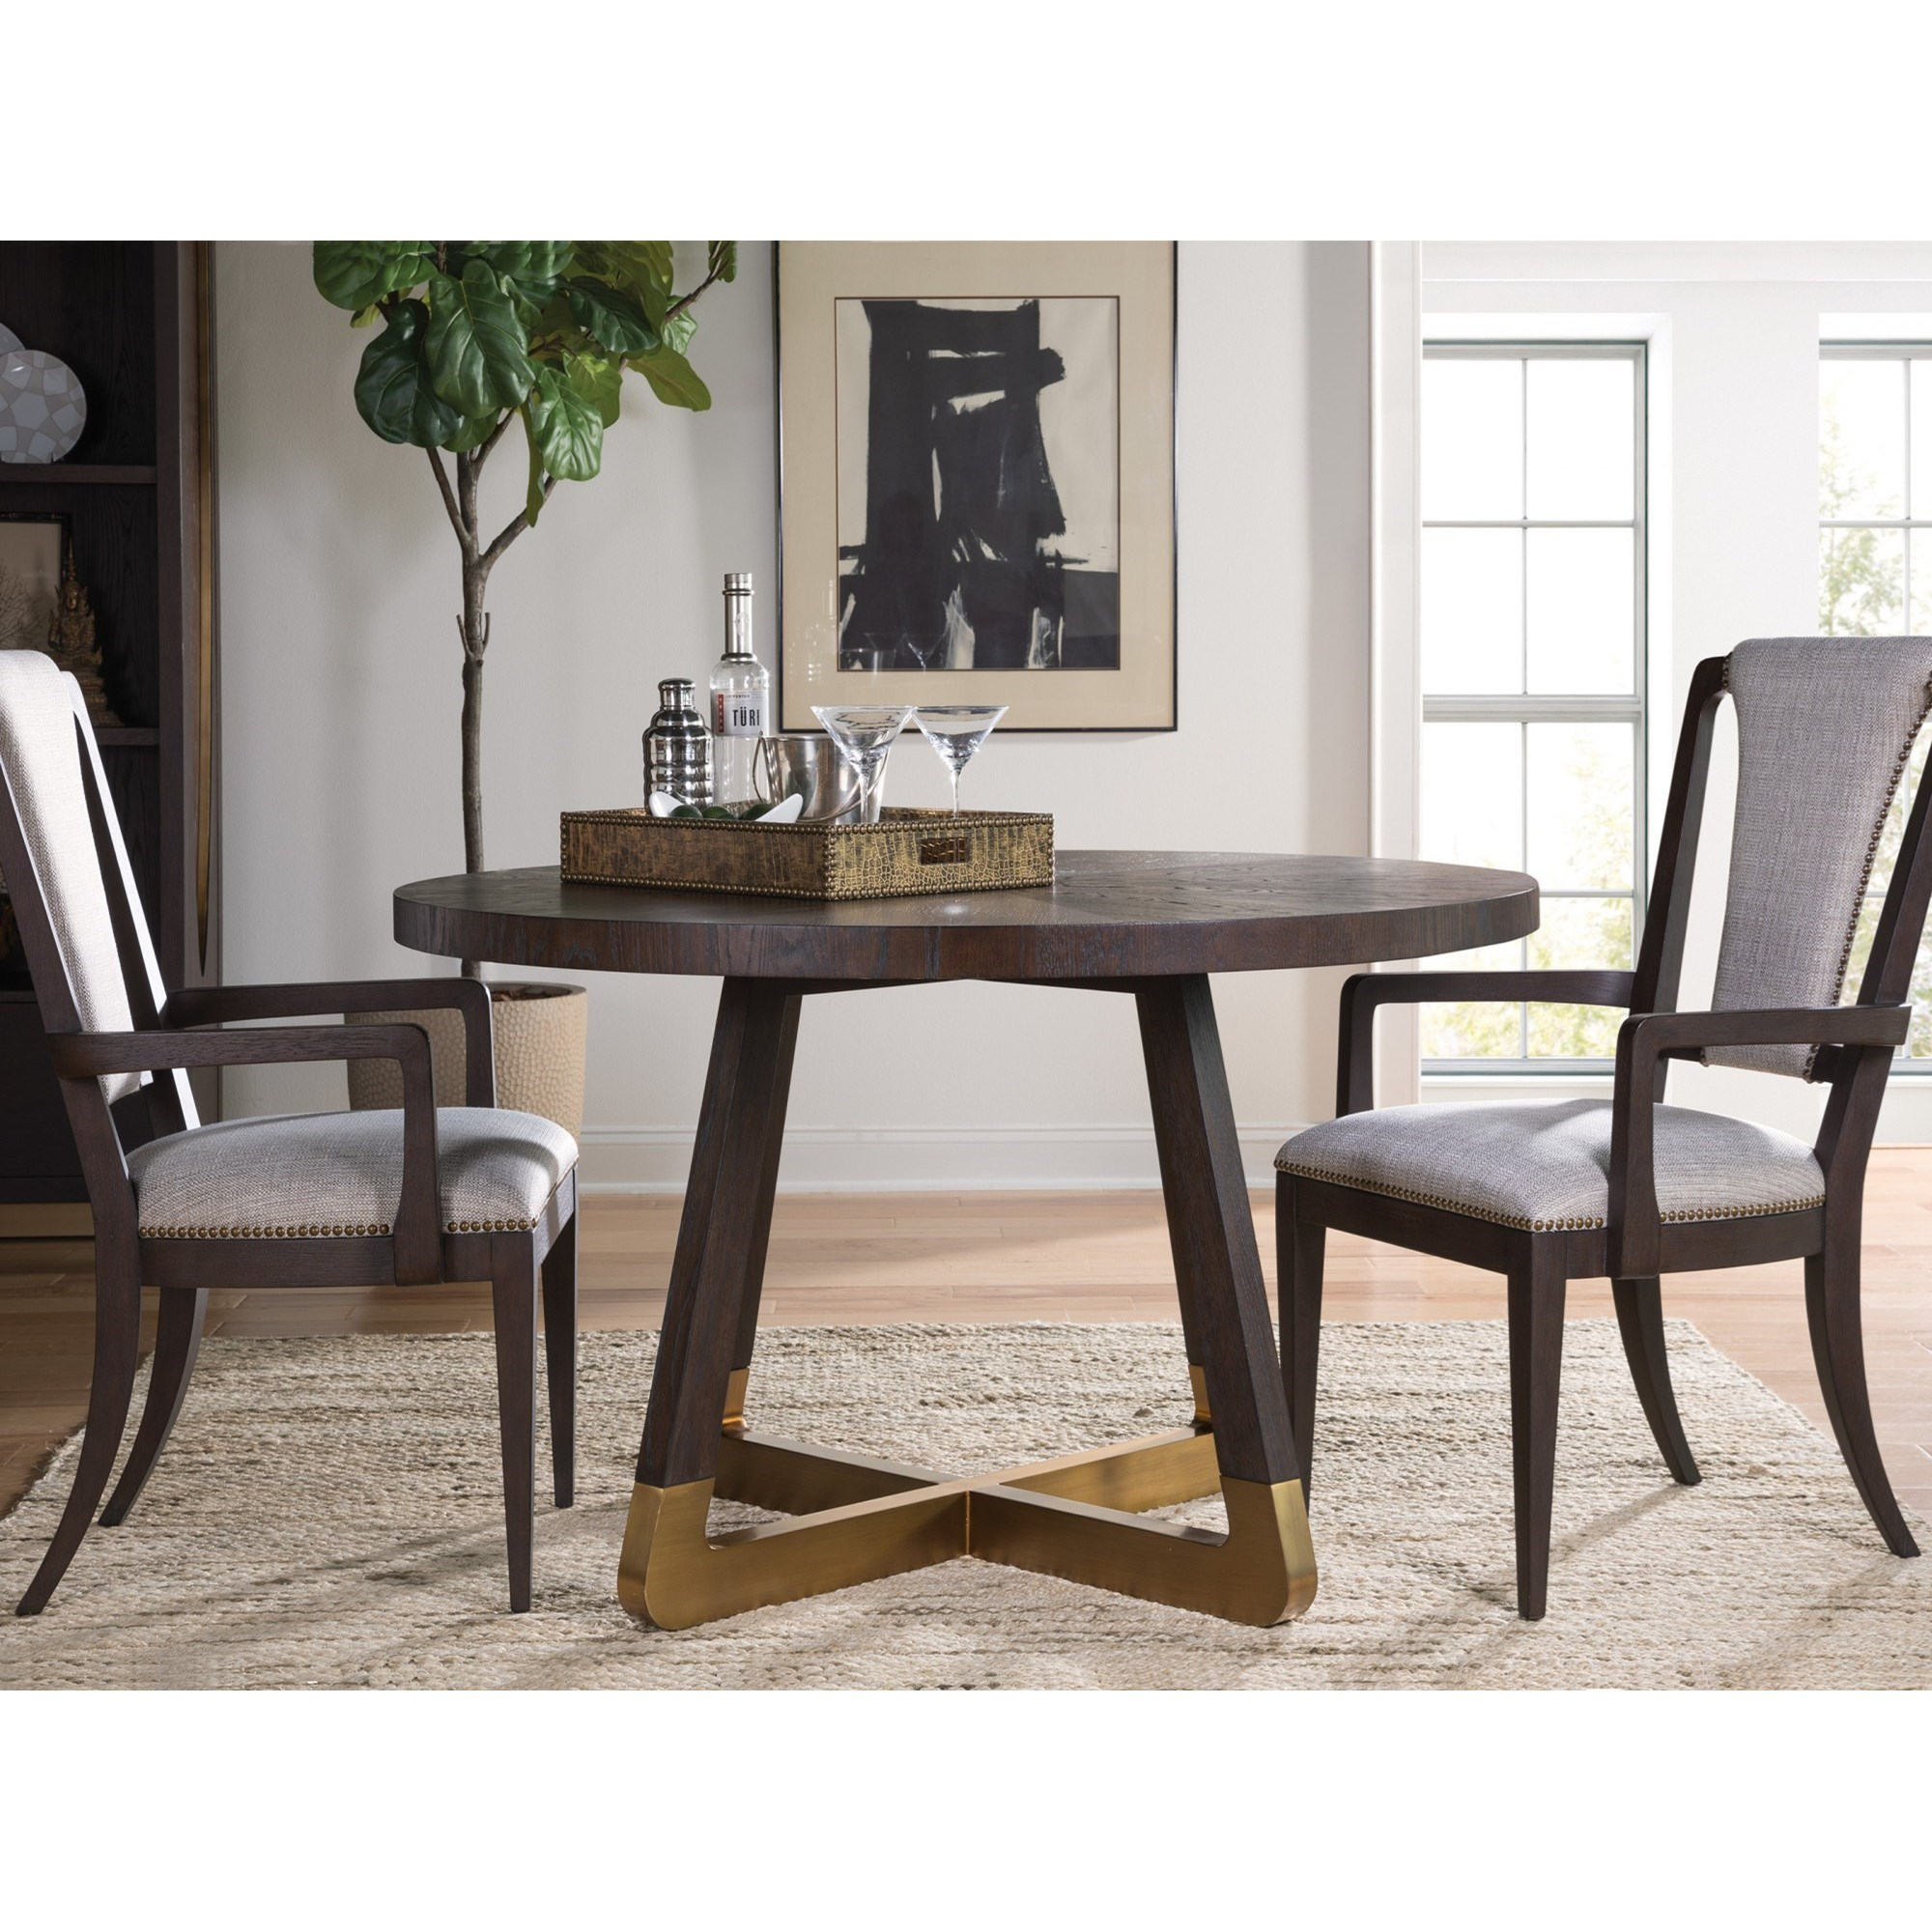 Verbatim 3-Piece Table & Chair Set by Artistica at Baer's Furniture